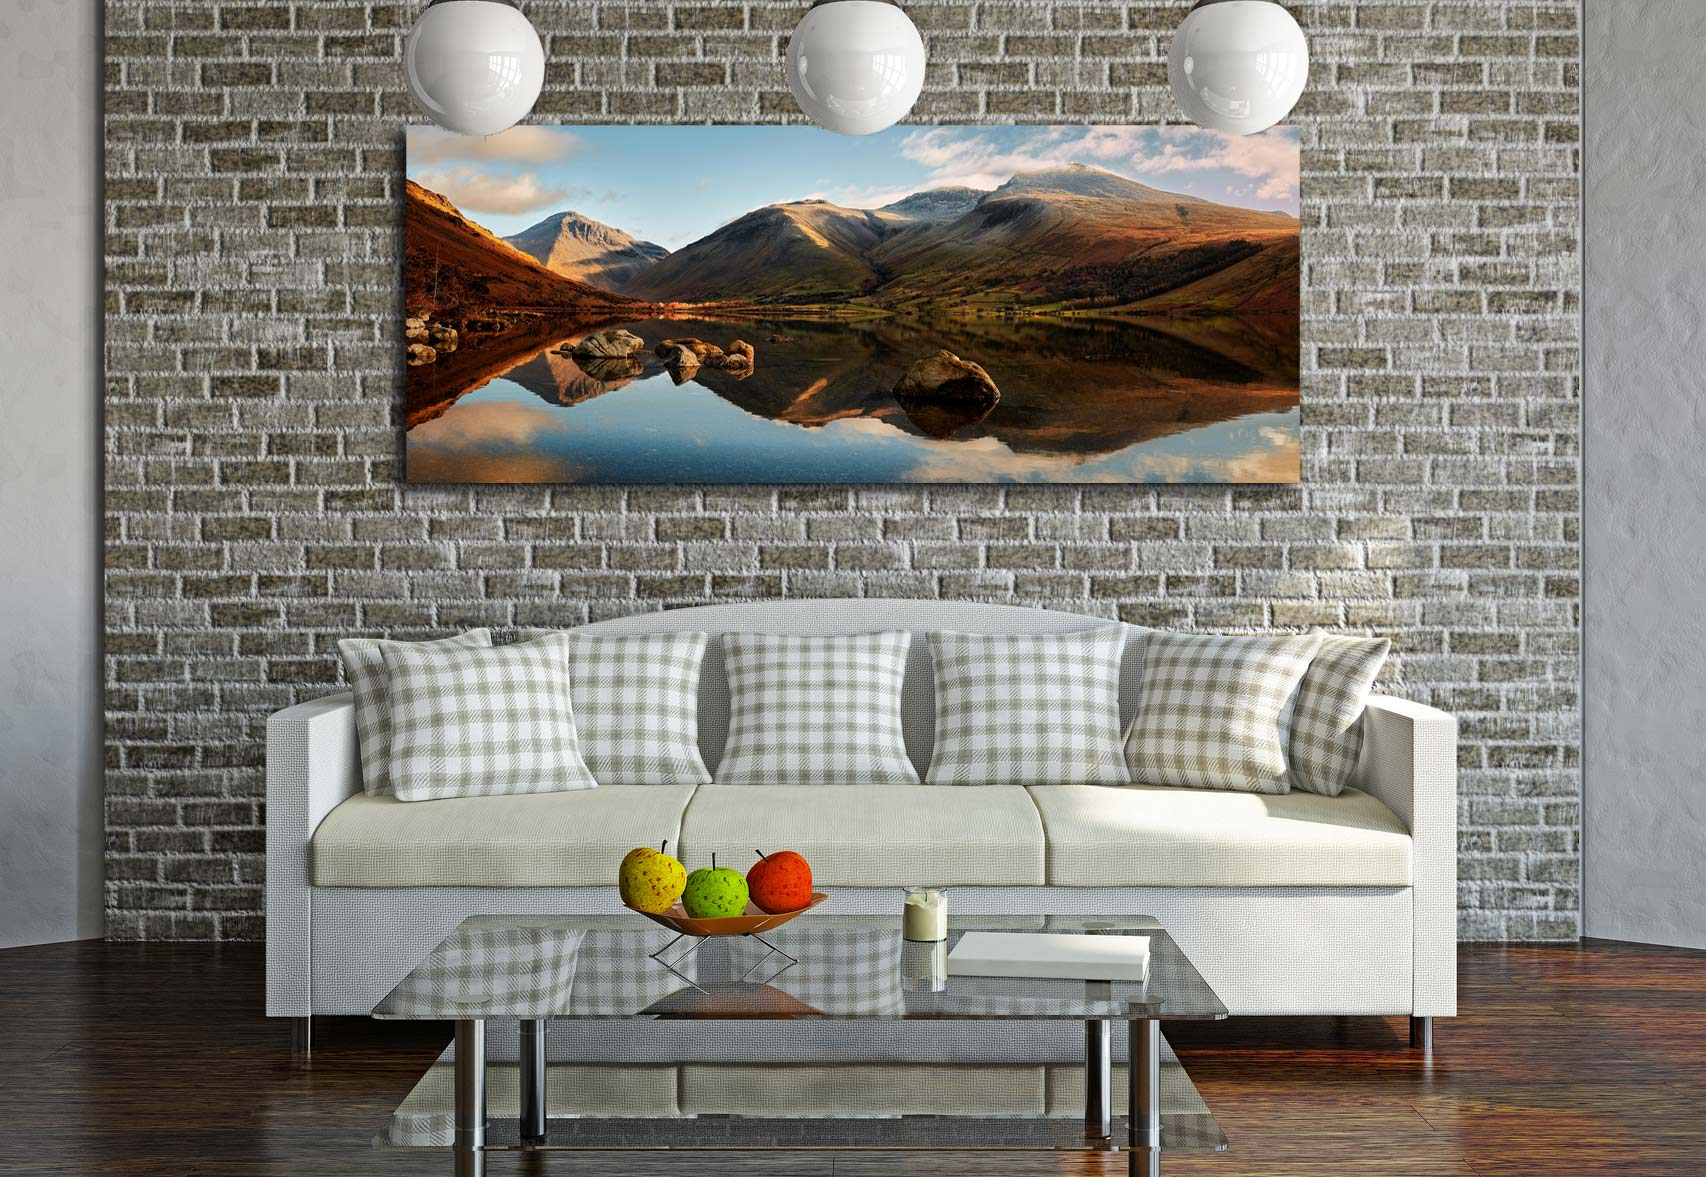 The first rays of light start to catch Wasdale head and Scafell Pike. Taken on a lovely calm winter's morning at Wast Water. Mountains left to right – Great Gable, Lingmell, Scafell Pike - Print Aluminium Backing With Acrylic Glazing on Wall